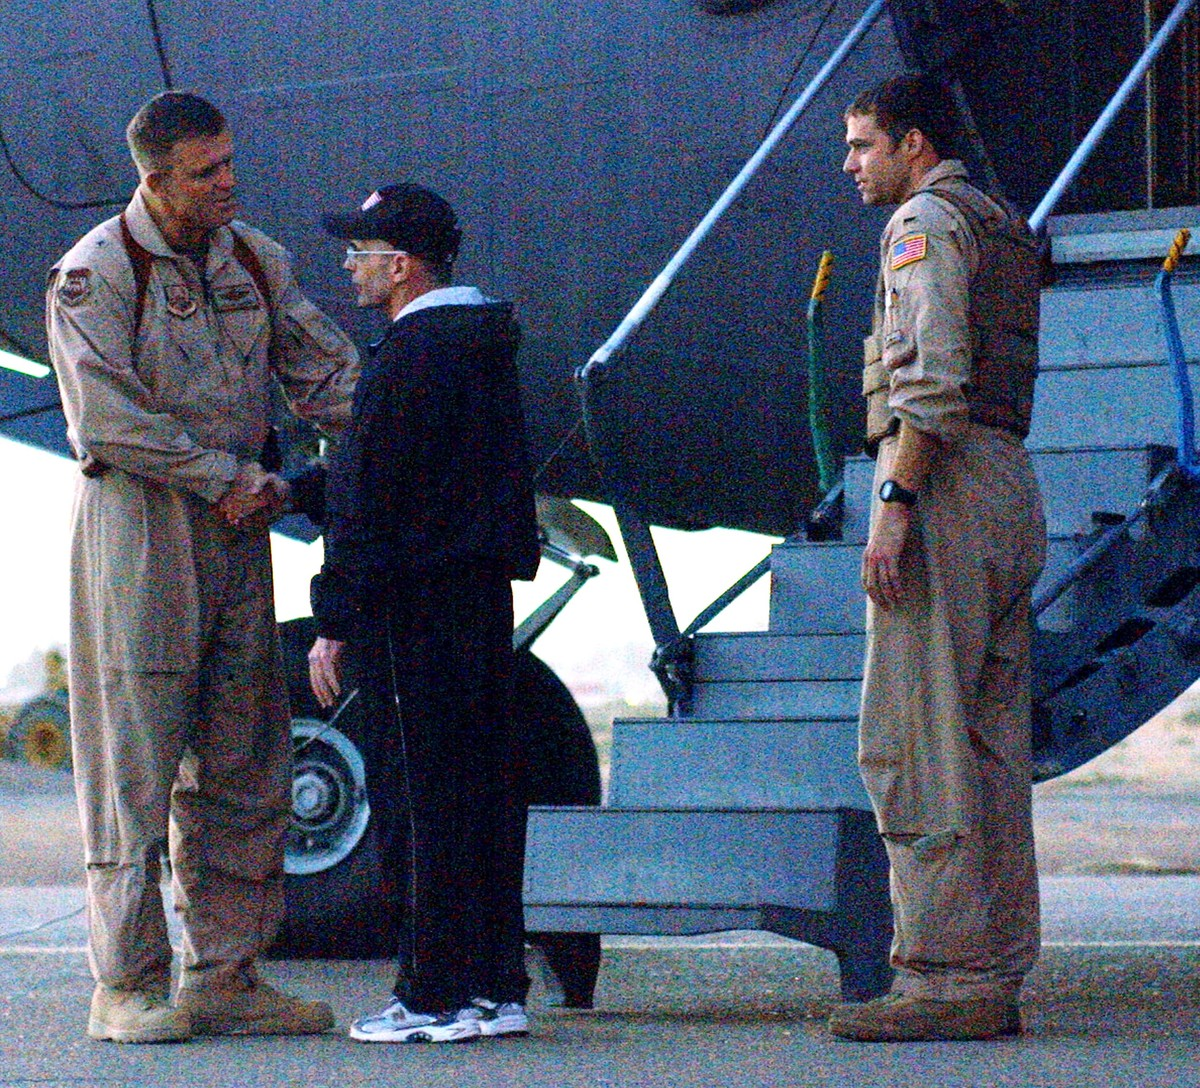 Roy Hallums shakes hands with a US troop in front of the plane that will take him home.